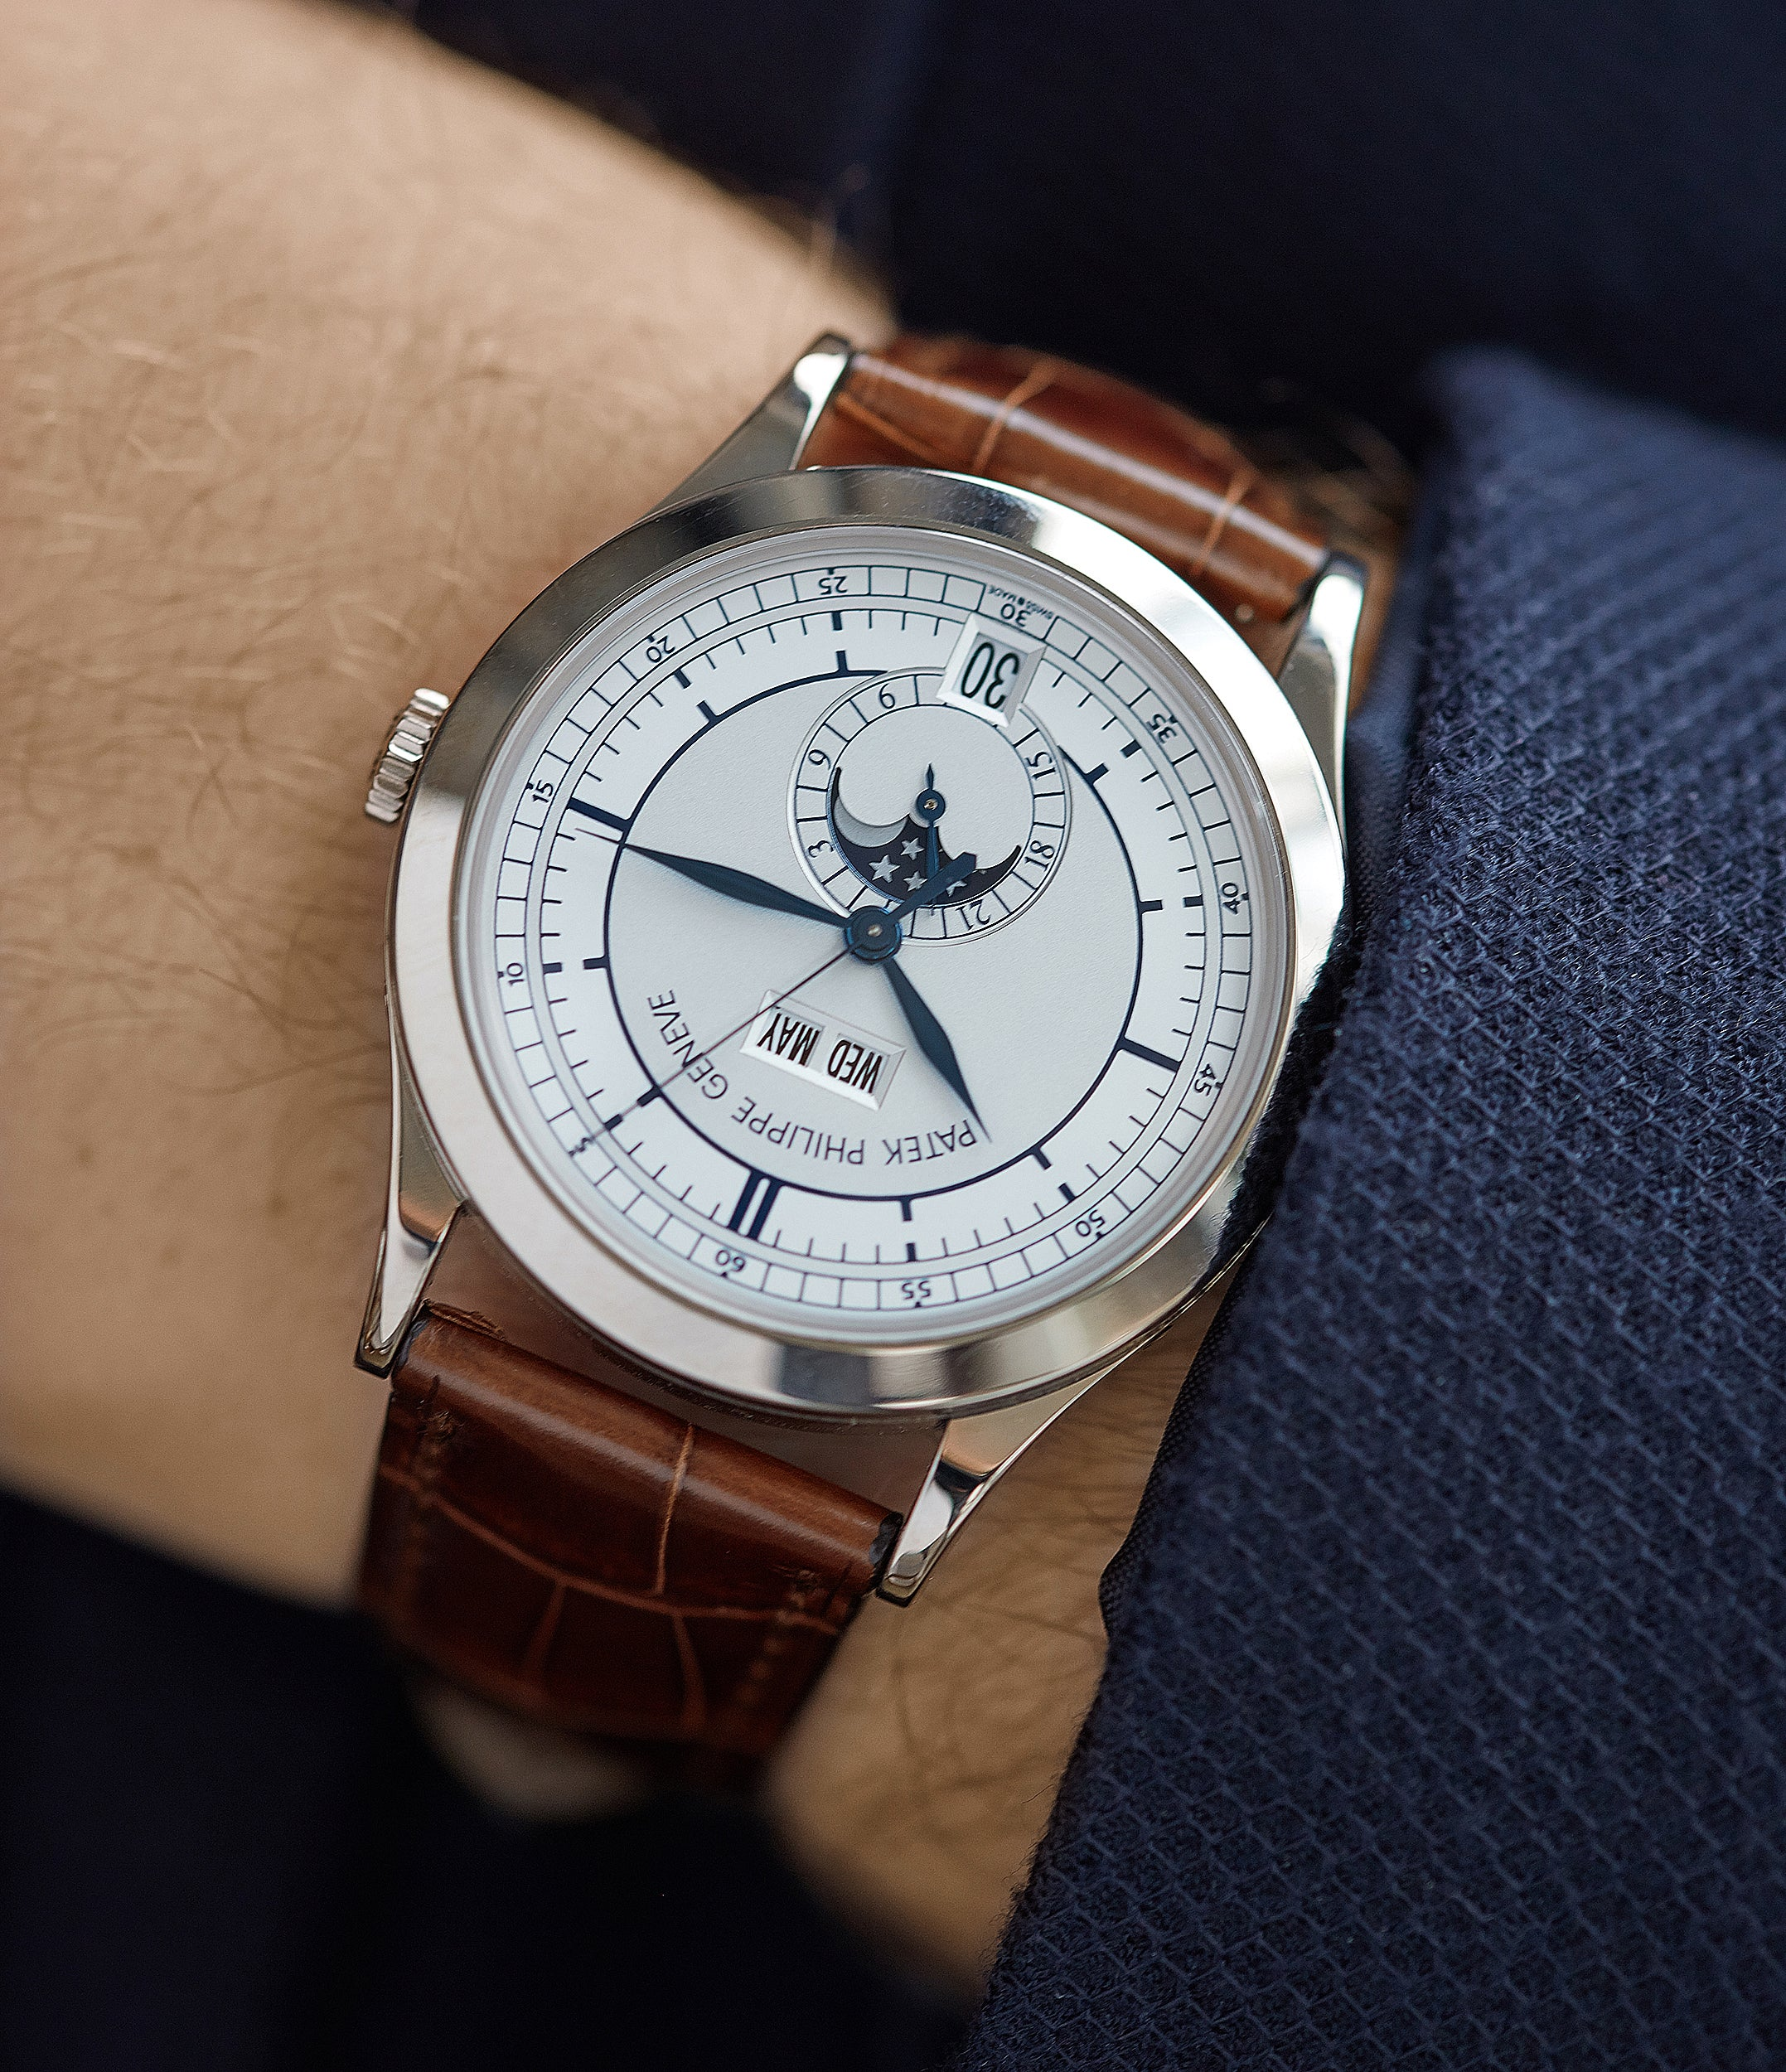 rare luxury dress watch sector dial Patek Philippe 5396G-001 Annual Calendar pre-owned rare white gold dress watch for sale online at A Collected Man London UK specialist of rare watches